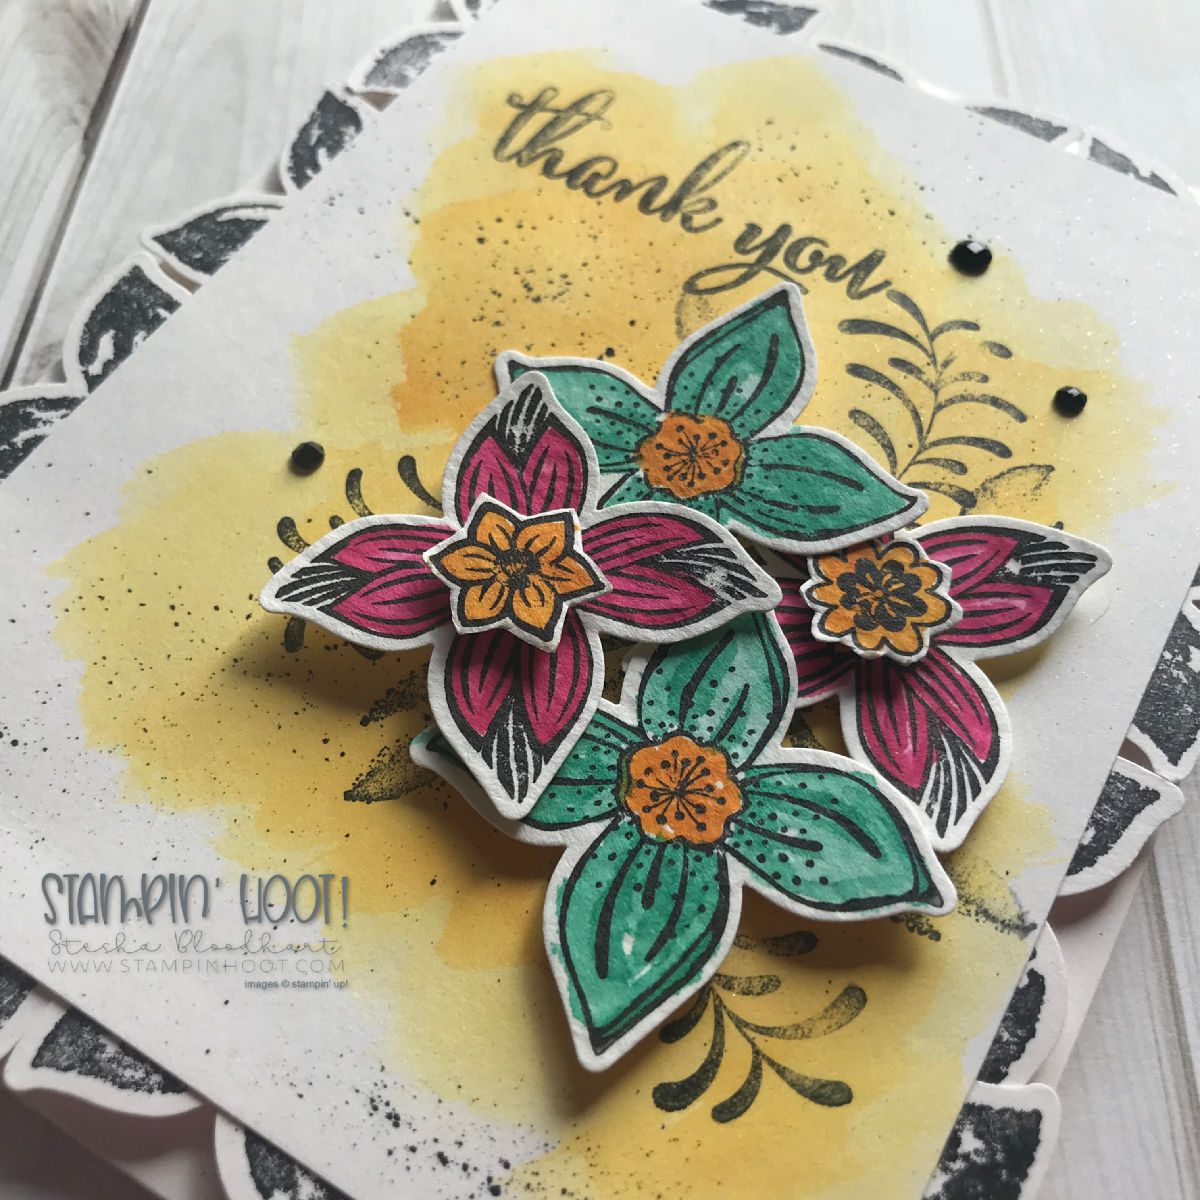 #tgifc180 Create a Thank You Card using the Pop of Petals Bundle by Stampin' Up! Card Created by Stesha Bloodhart, Stampin' Hoot! #steshabloodhart #stampinhoot